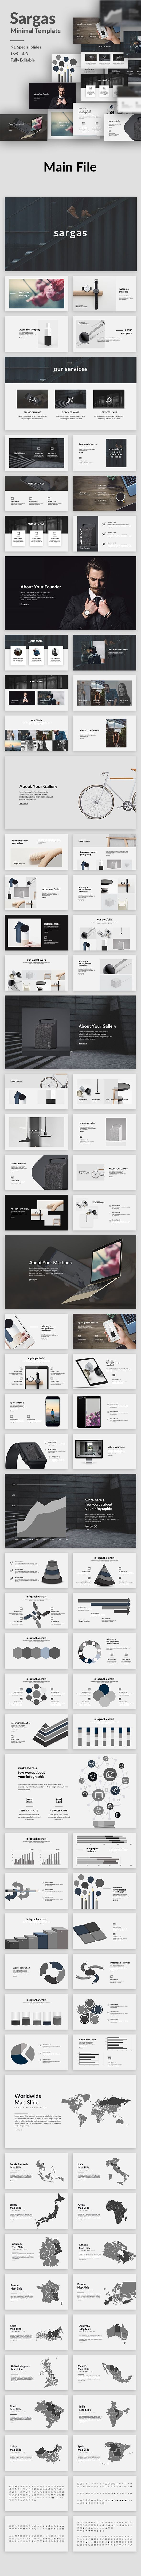 Sargas  Minimal Powerpoint Template — Powerpoint PPT #infographics #schemes • Download ➝ https://graphicriver.net/item/sargas-minimal-powerpoint-template/19877847?ref=pxcr